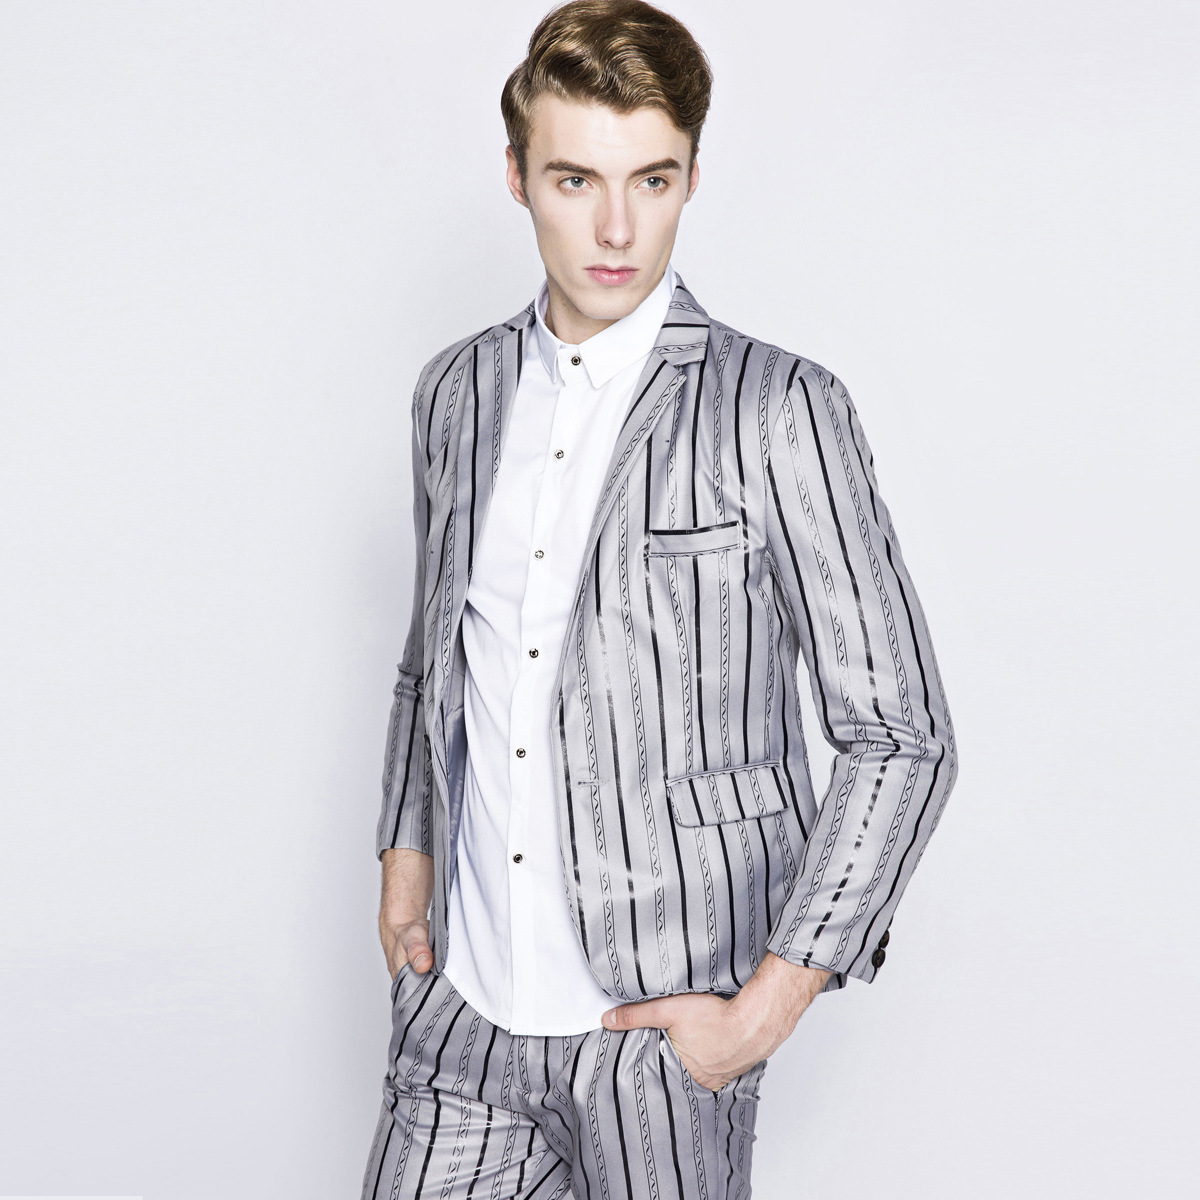 Mens Striped Suit Latest Coat Pant Designs Men 39 S High End Fashion Personality Men Slim Fit